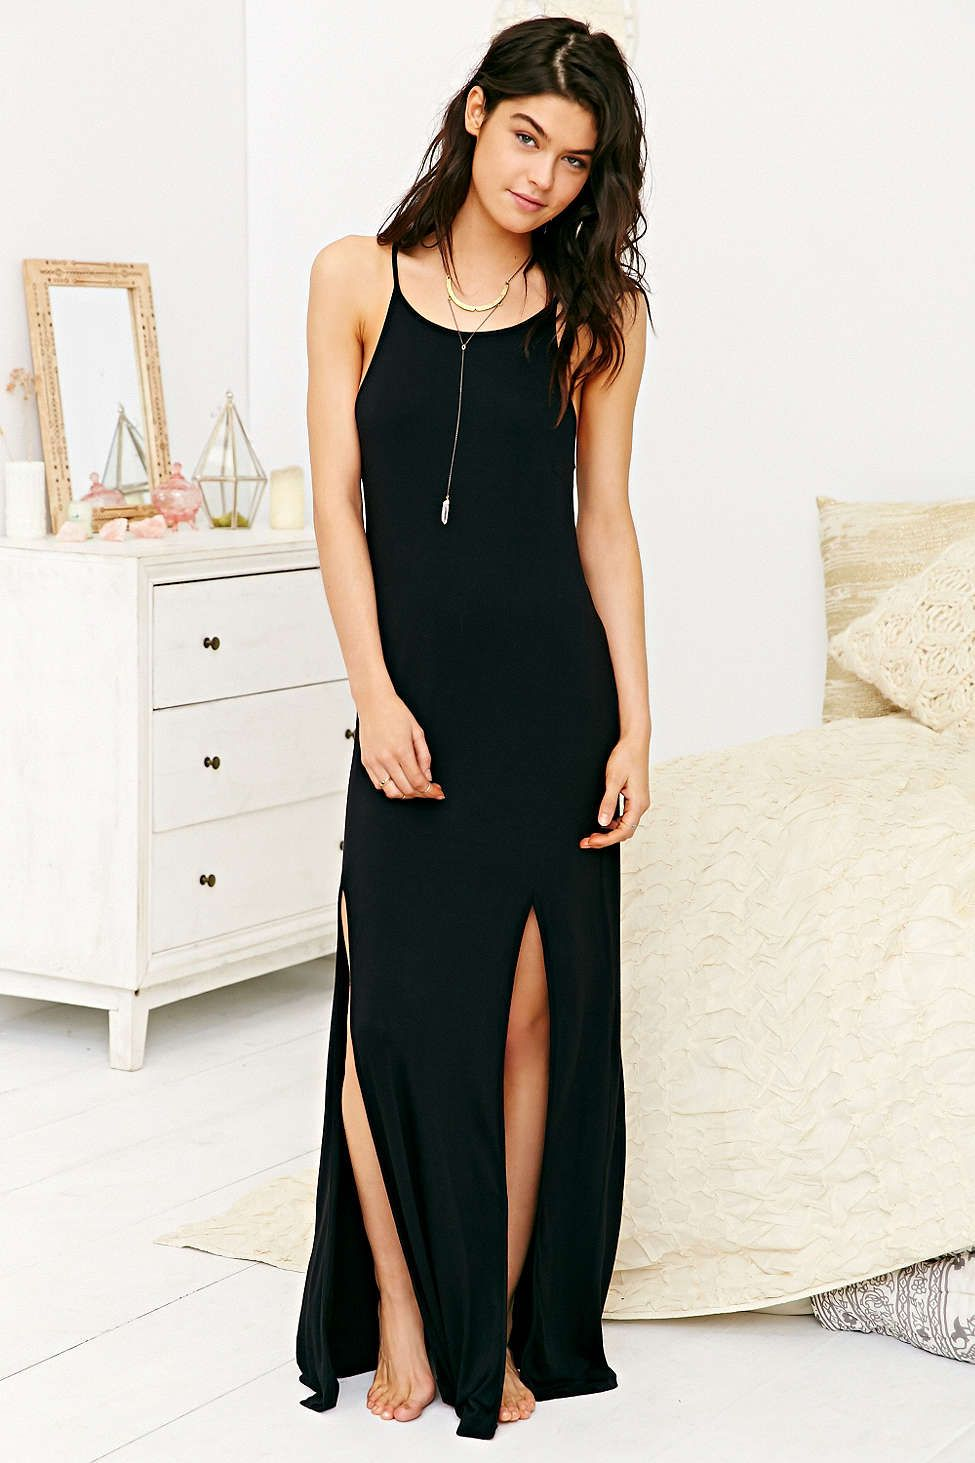 The Fifth Label Play It Right Maxi Dress, find it here: http://rstyle.me/n/wiwnhsjew